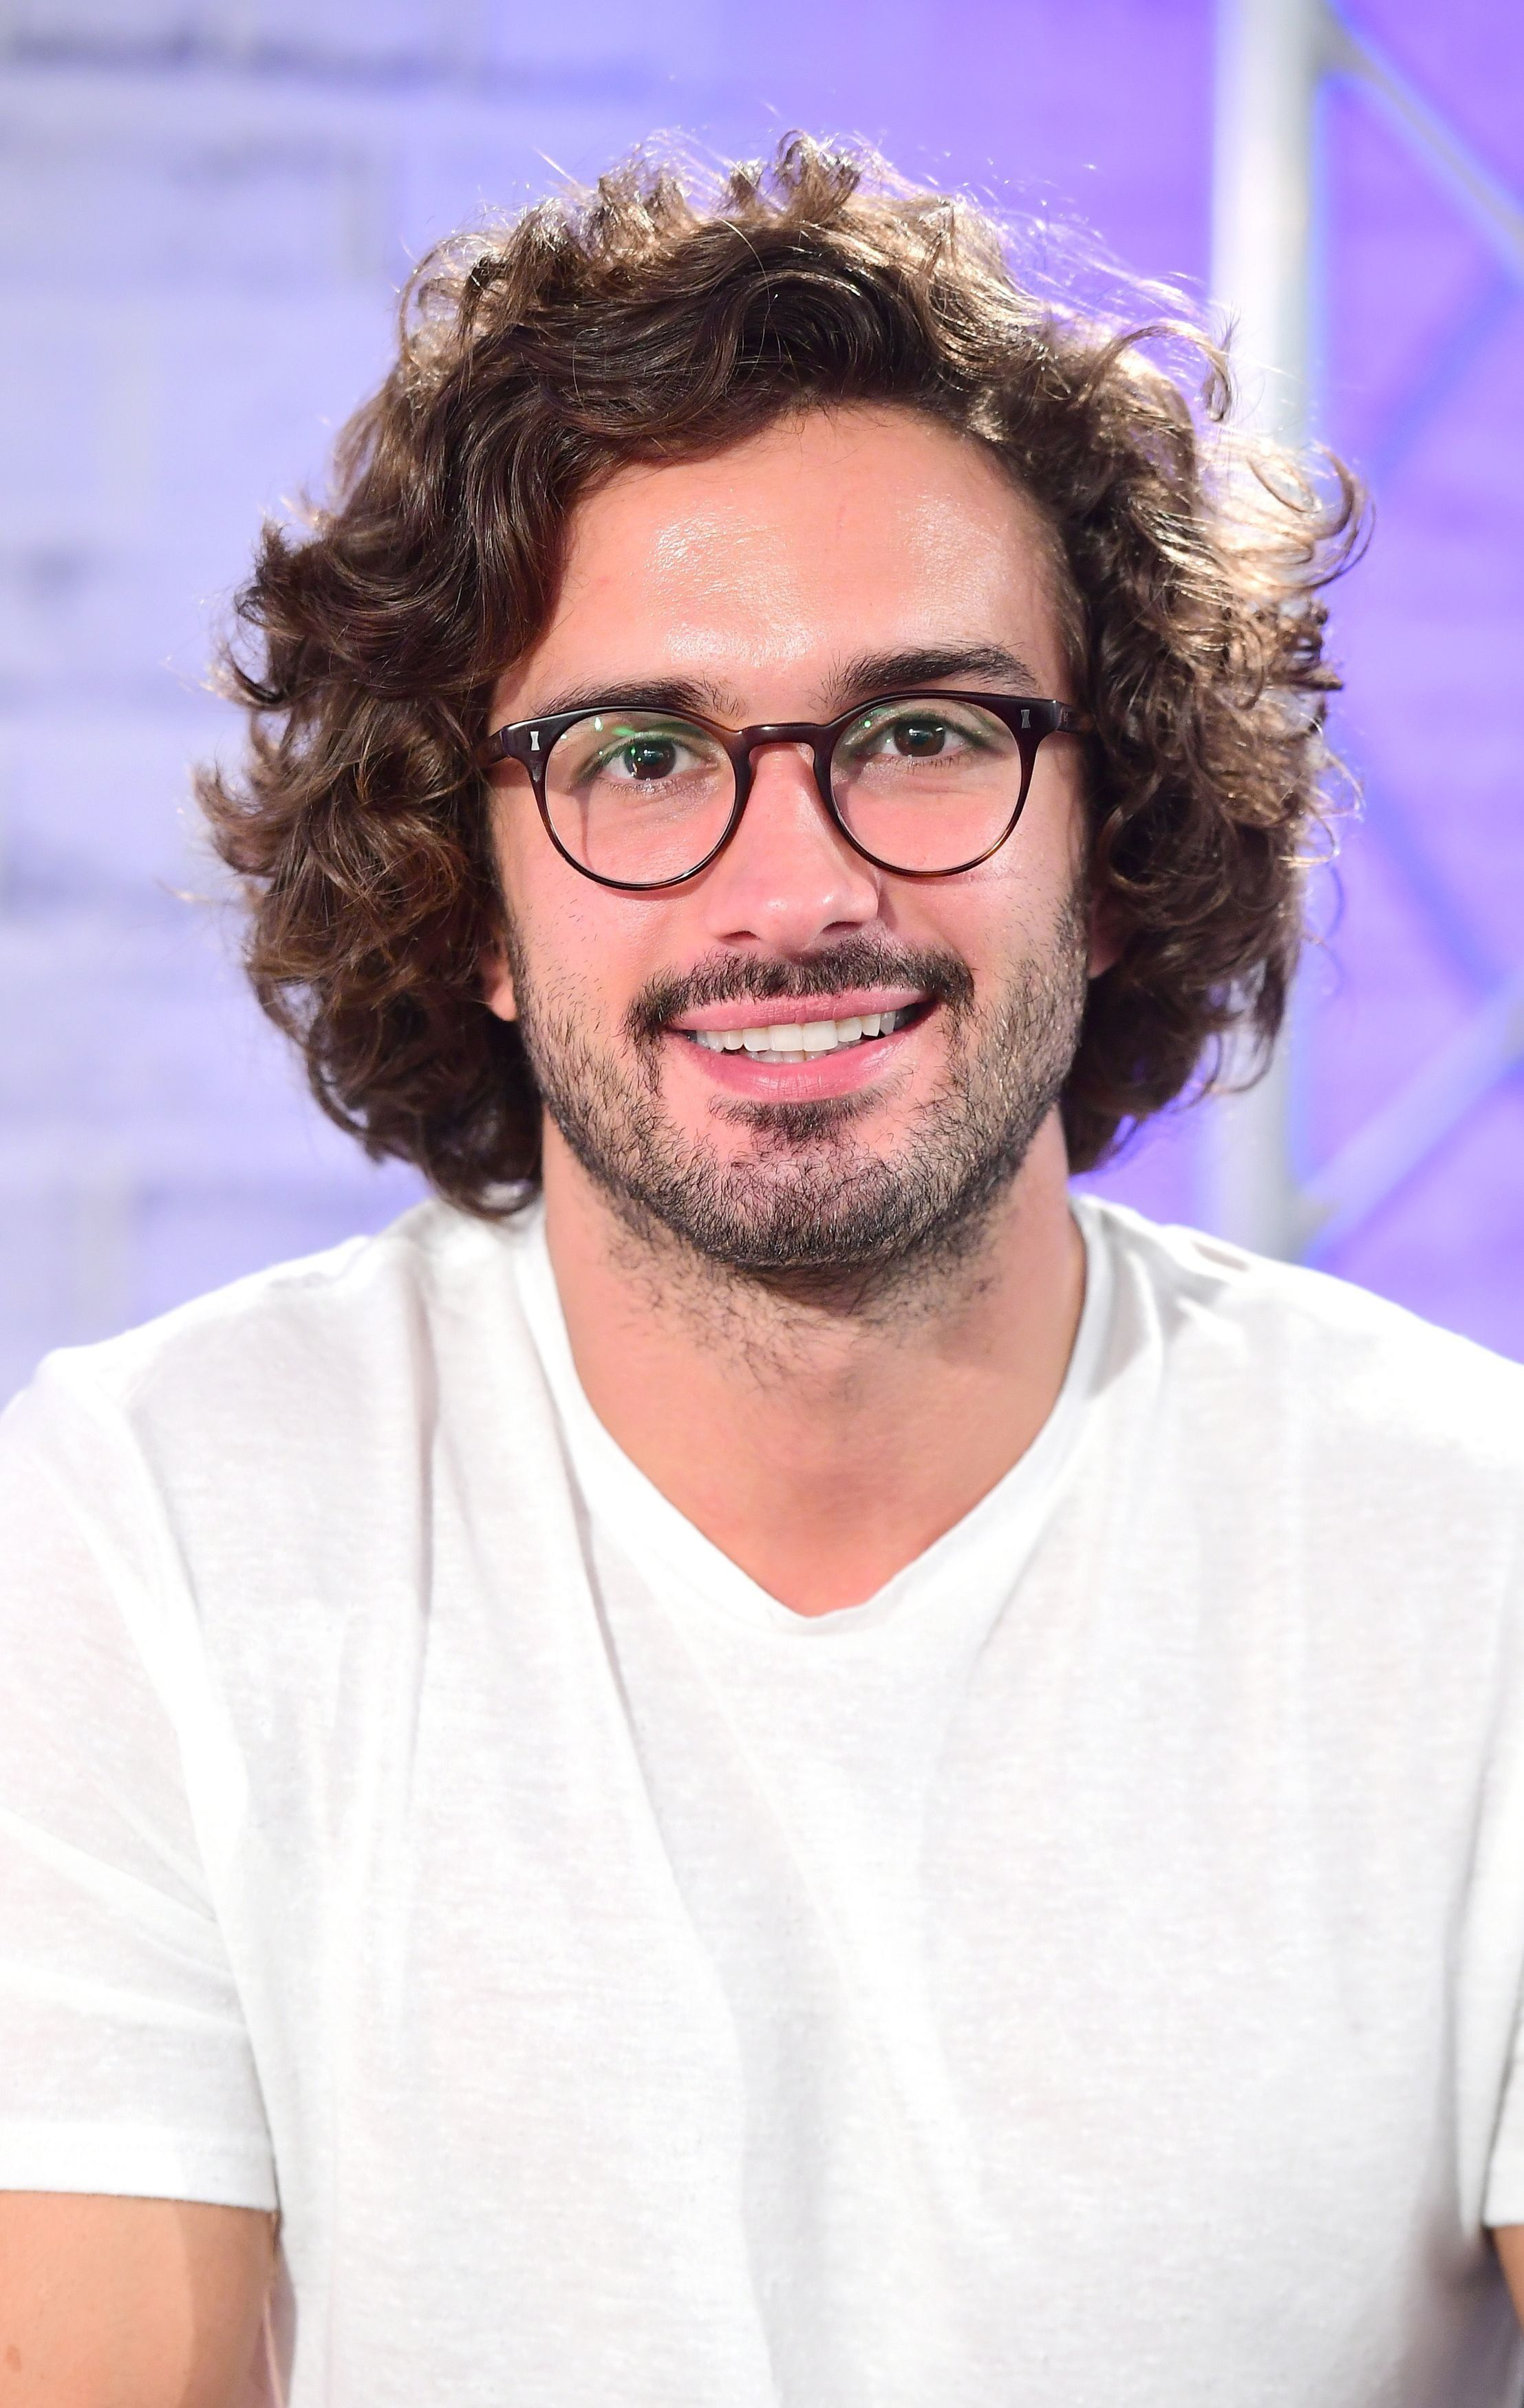 Joe Wicks, Aka The Body Coach, Is Trying To Clear His Schedule For 'Strictly Come